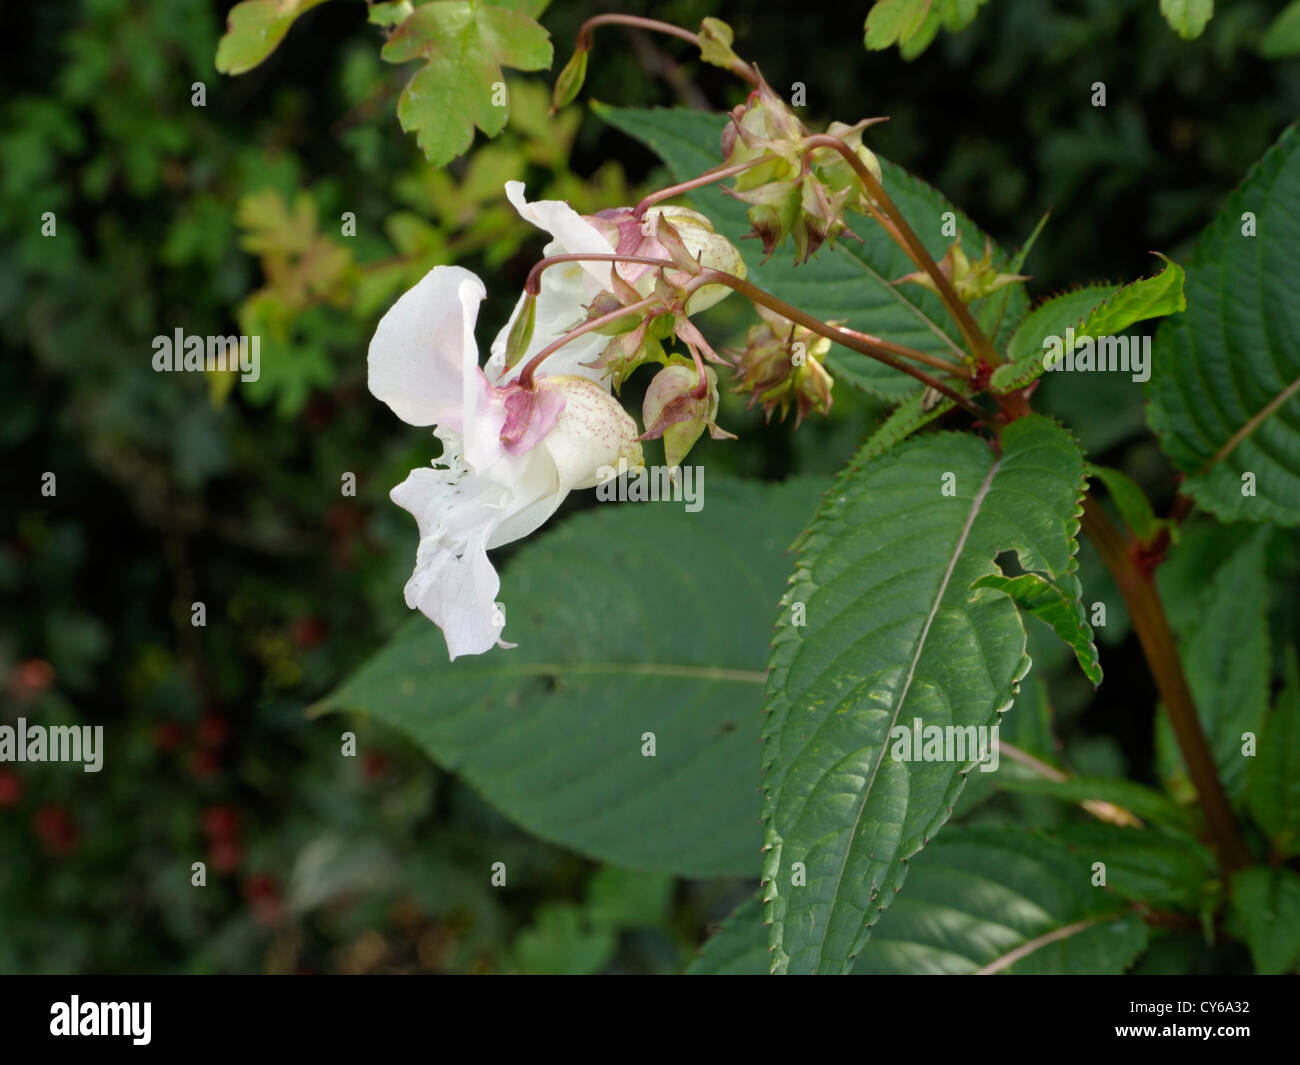 Indian or Himalayan Balsam, Impatiens glandulifera - Stock Image